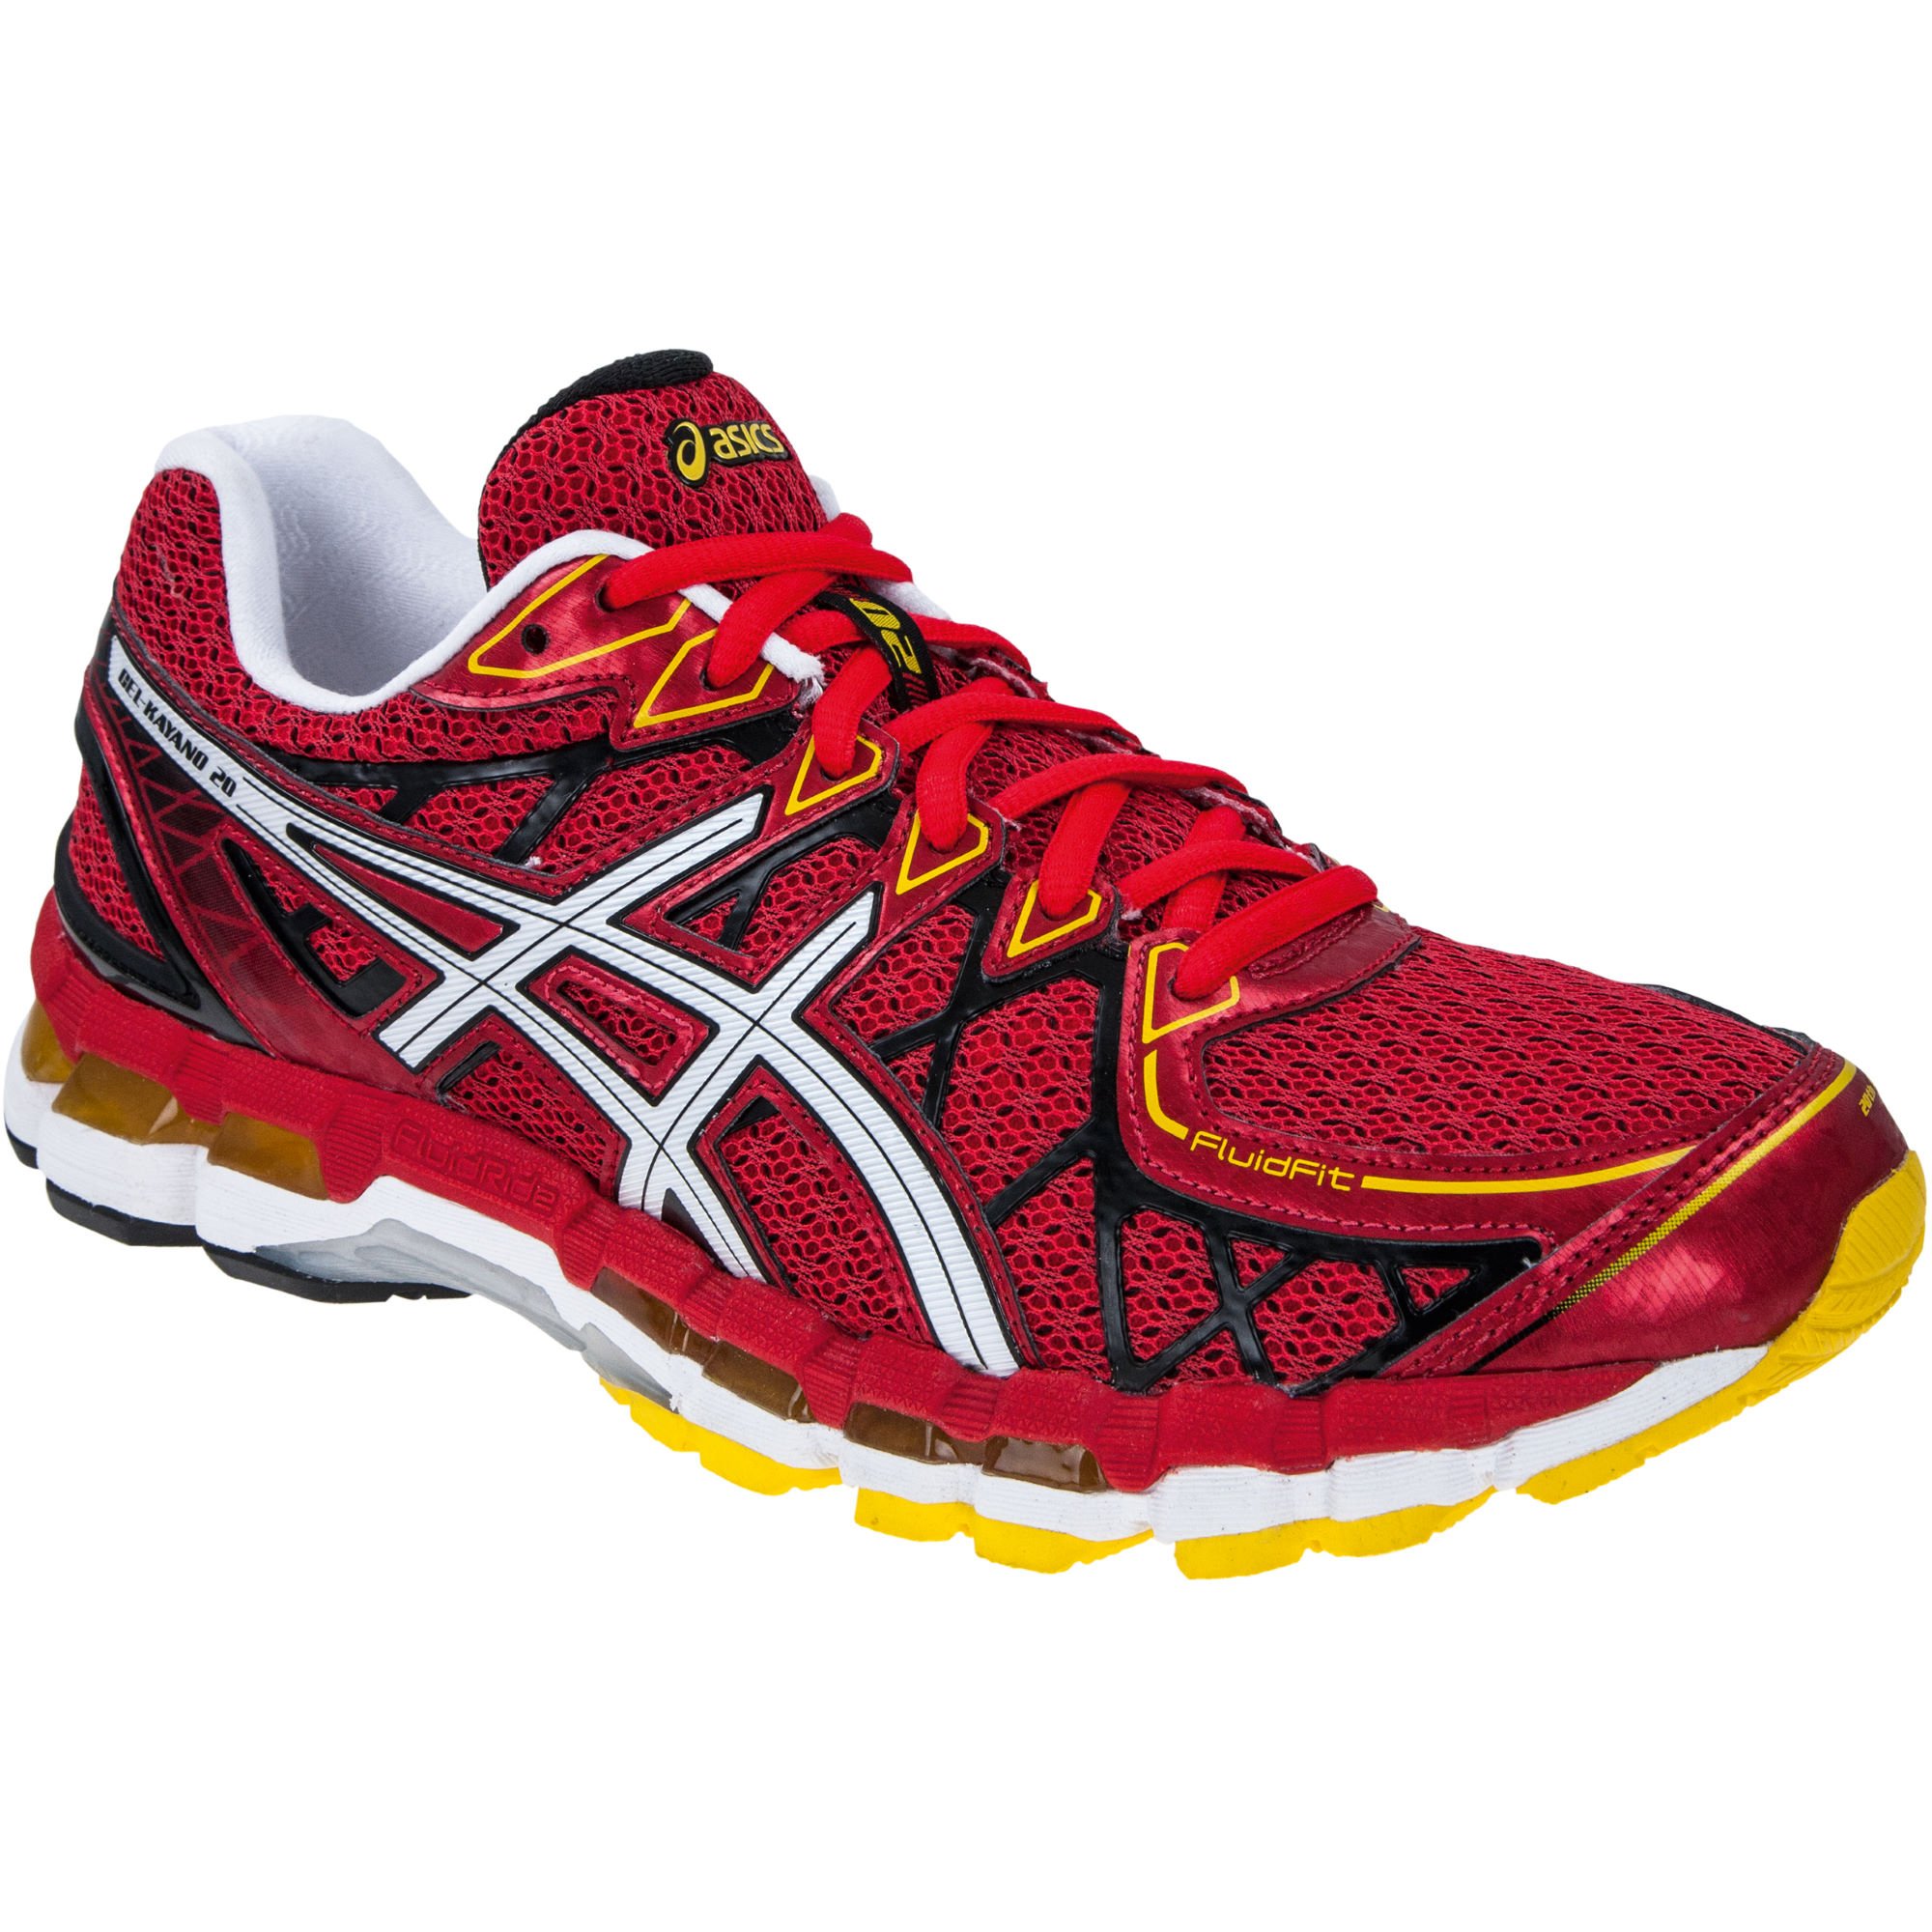 Zapatillas asics running 2014 zapatillas running asics gel - Asics Gel Kayano 20 Shoes Wide Fit 2e Aw14